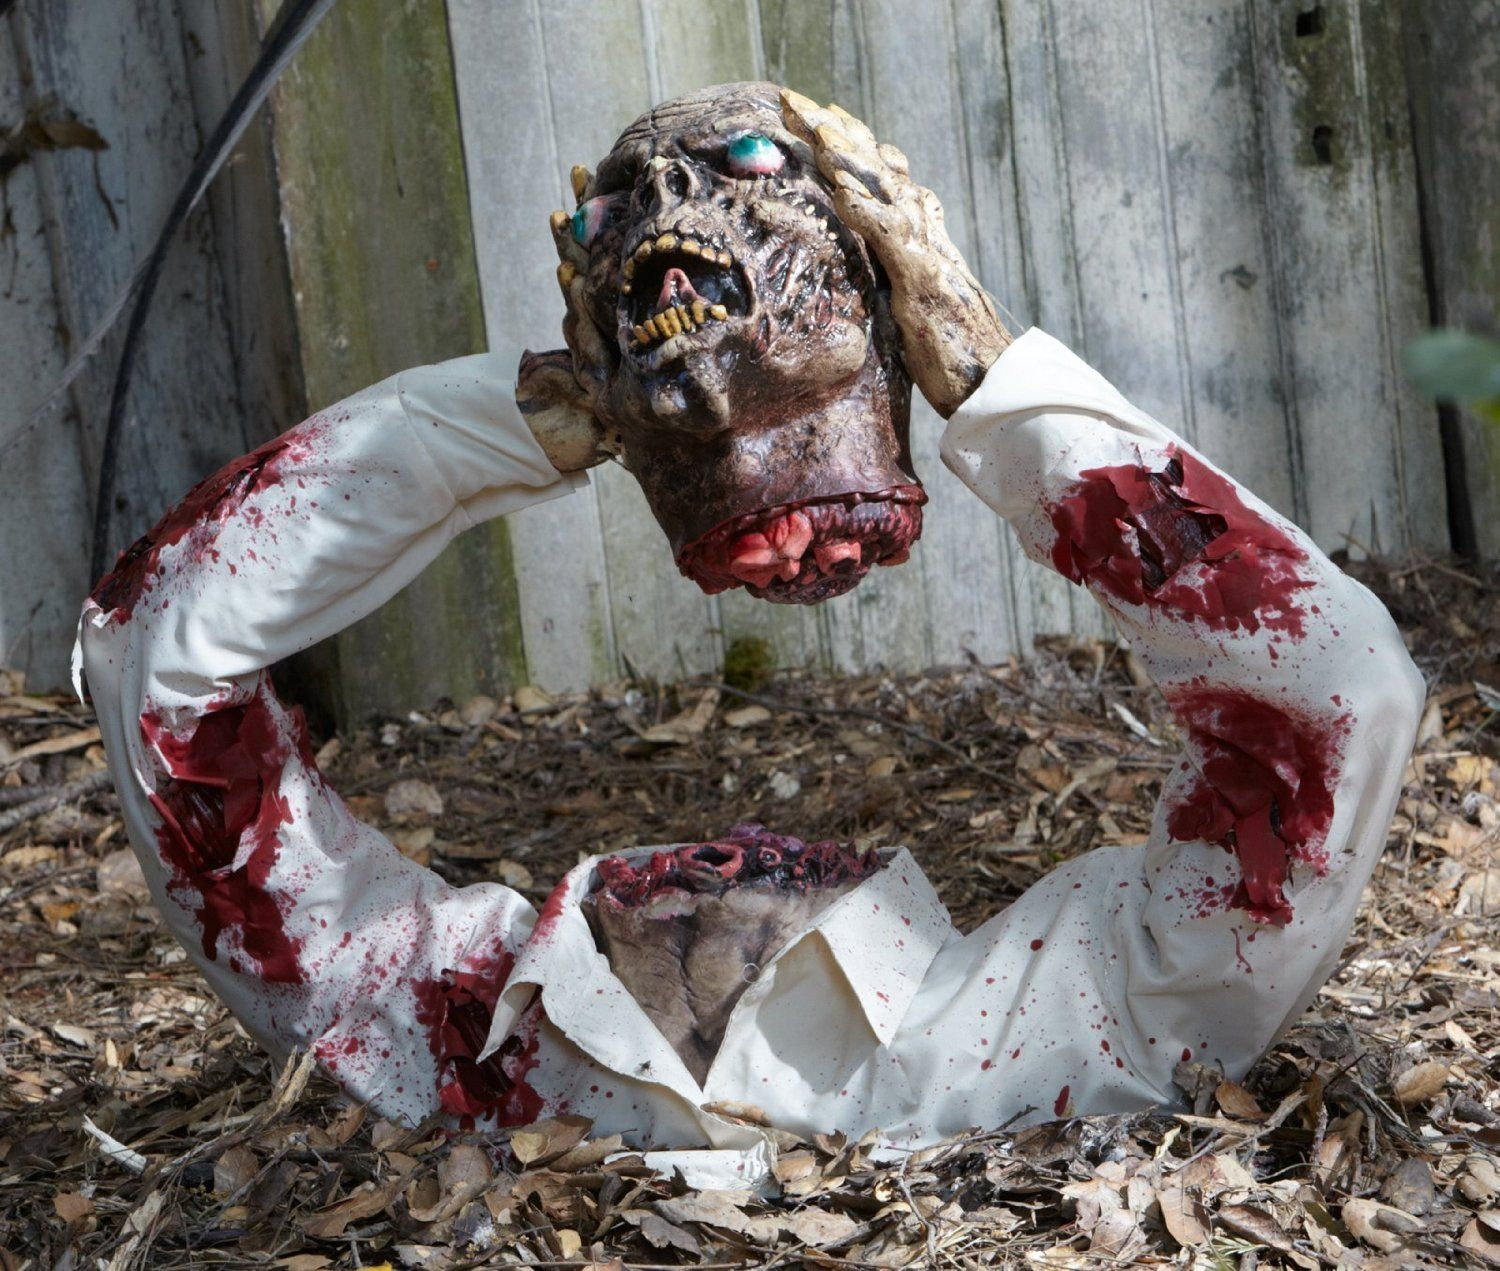 halloween decorations homemade grave yard zombie halloween decoration - Cool Halloween Decorations